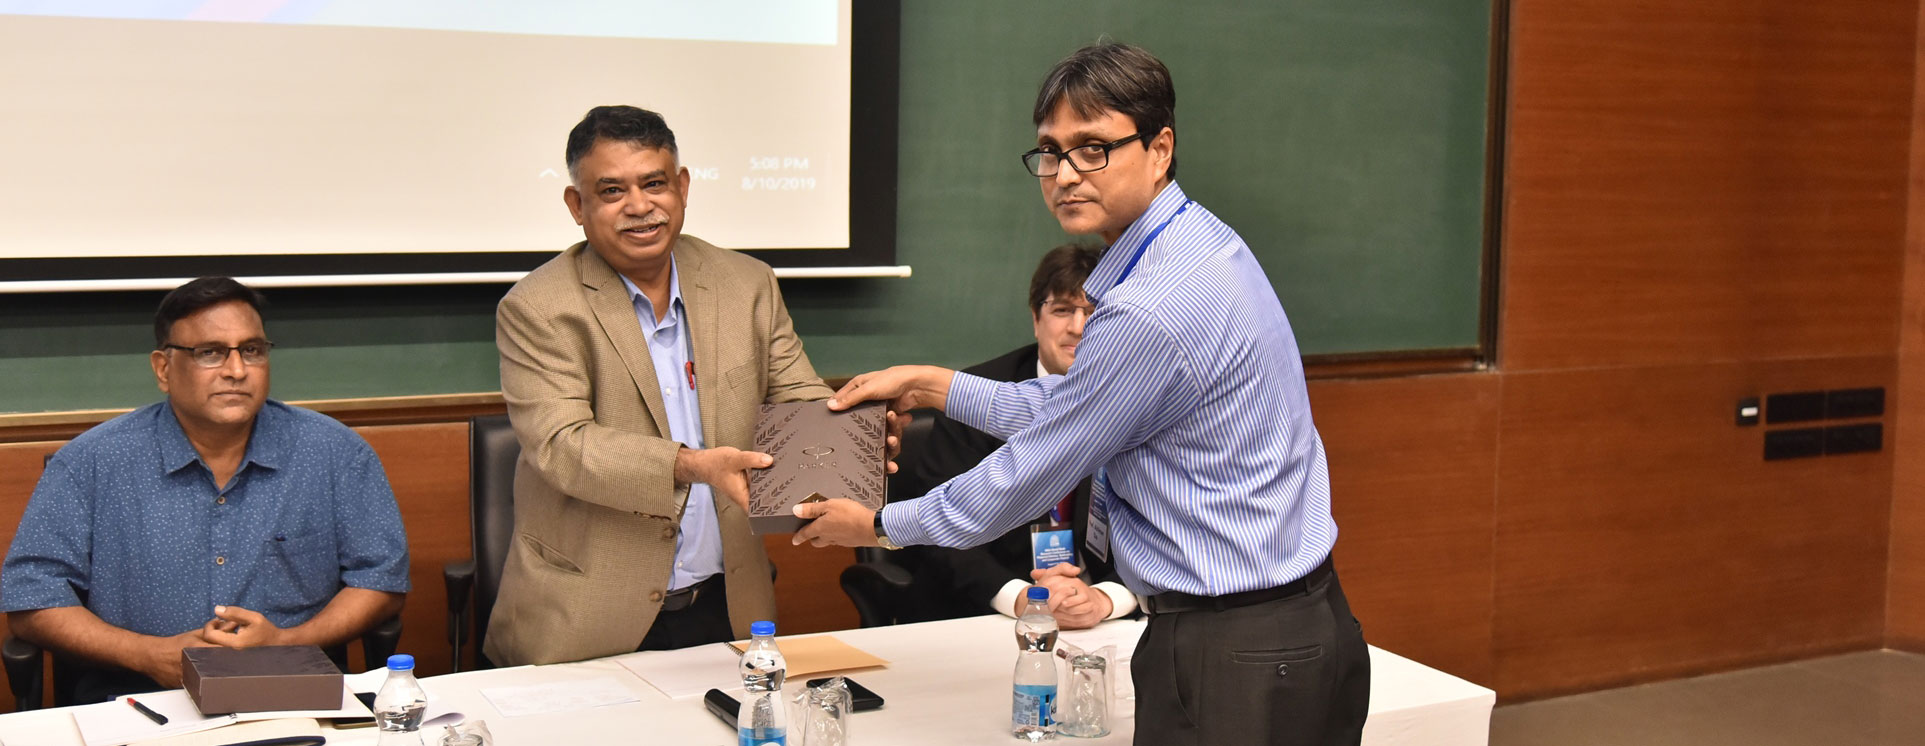 Prof. Abhiman Das handing over a memento to Prof. Subrata Sarkar, a panellist in the Financial Distress, Bankruptcy, and Corporate Finance Conference.